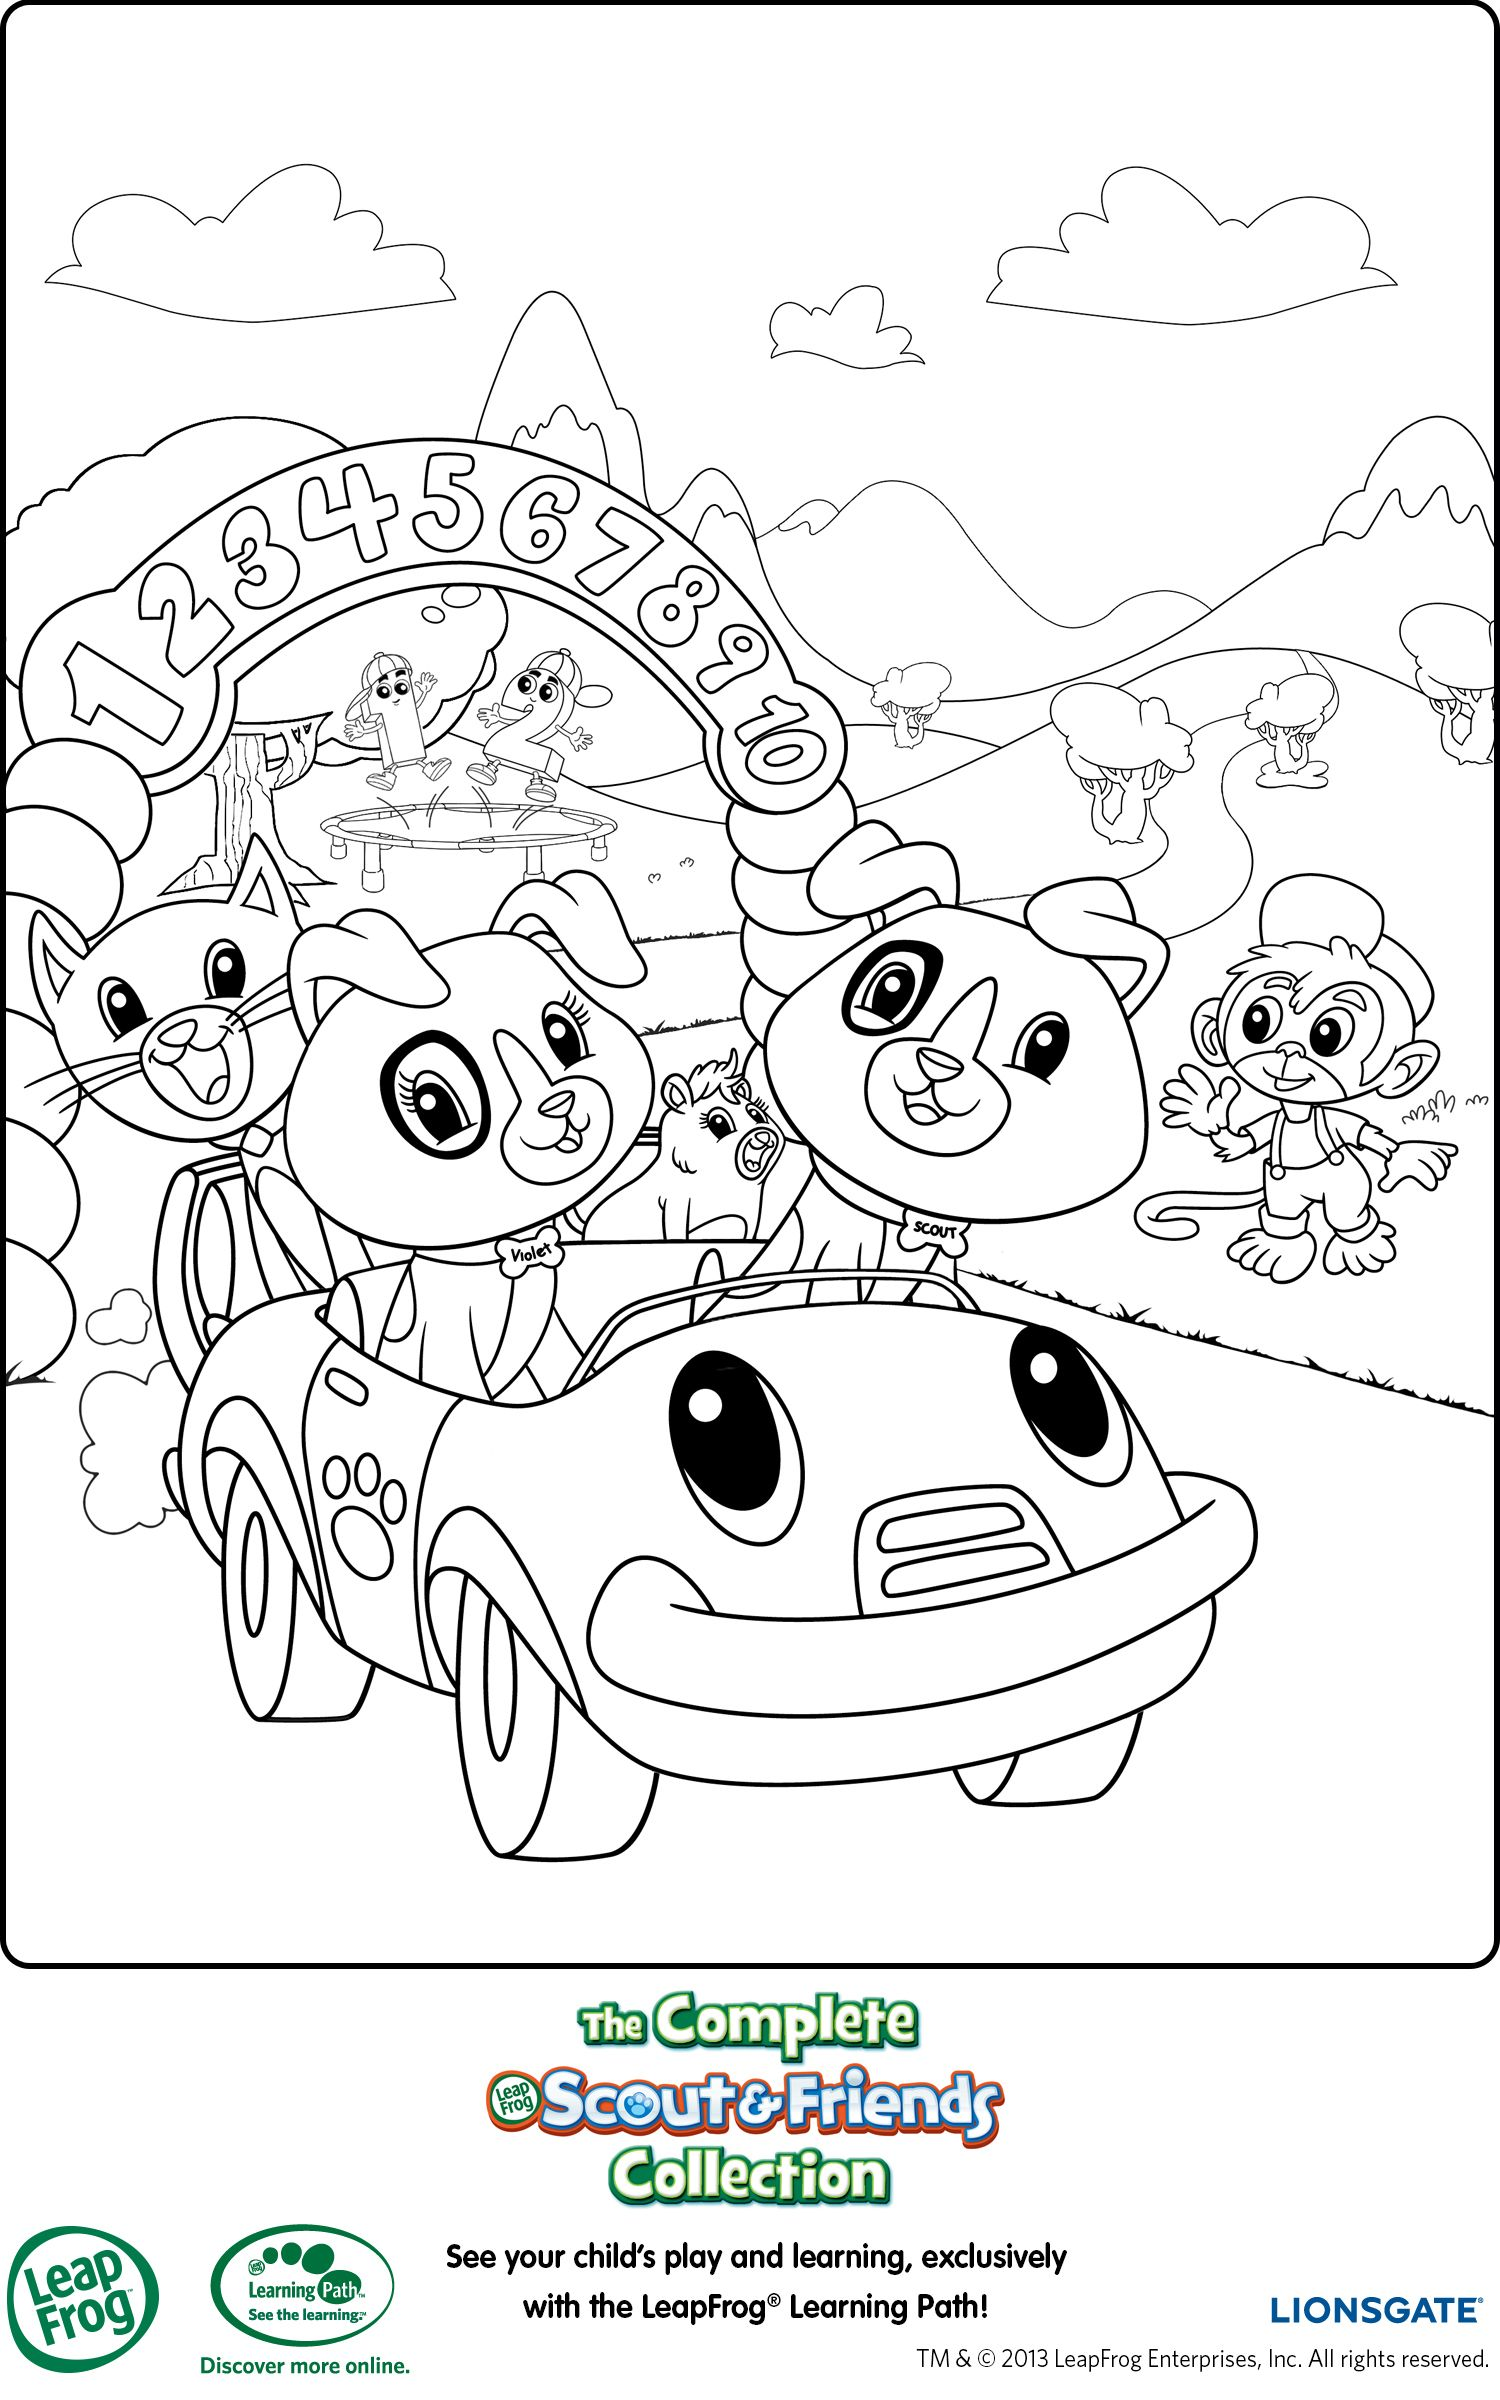 Leapfrog printable coloring page | Printable Coloring Pages, Crafts ...